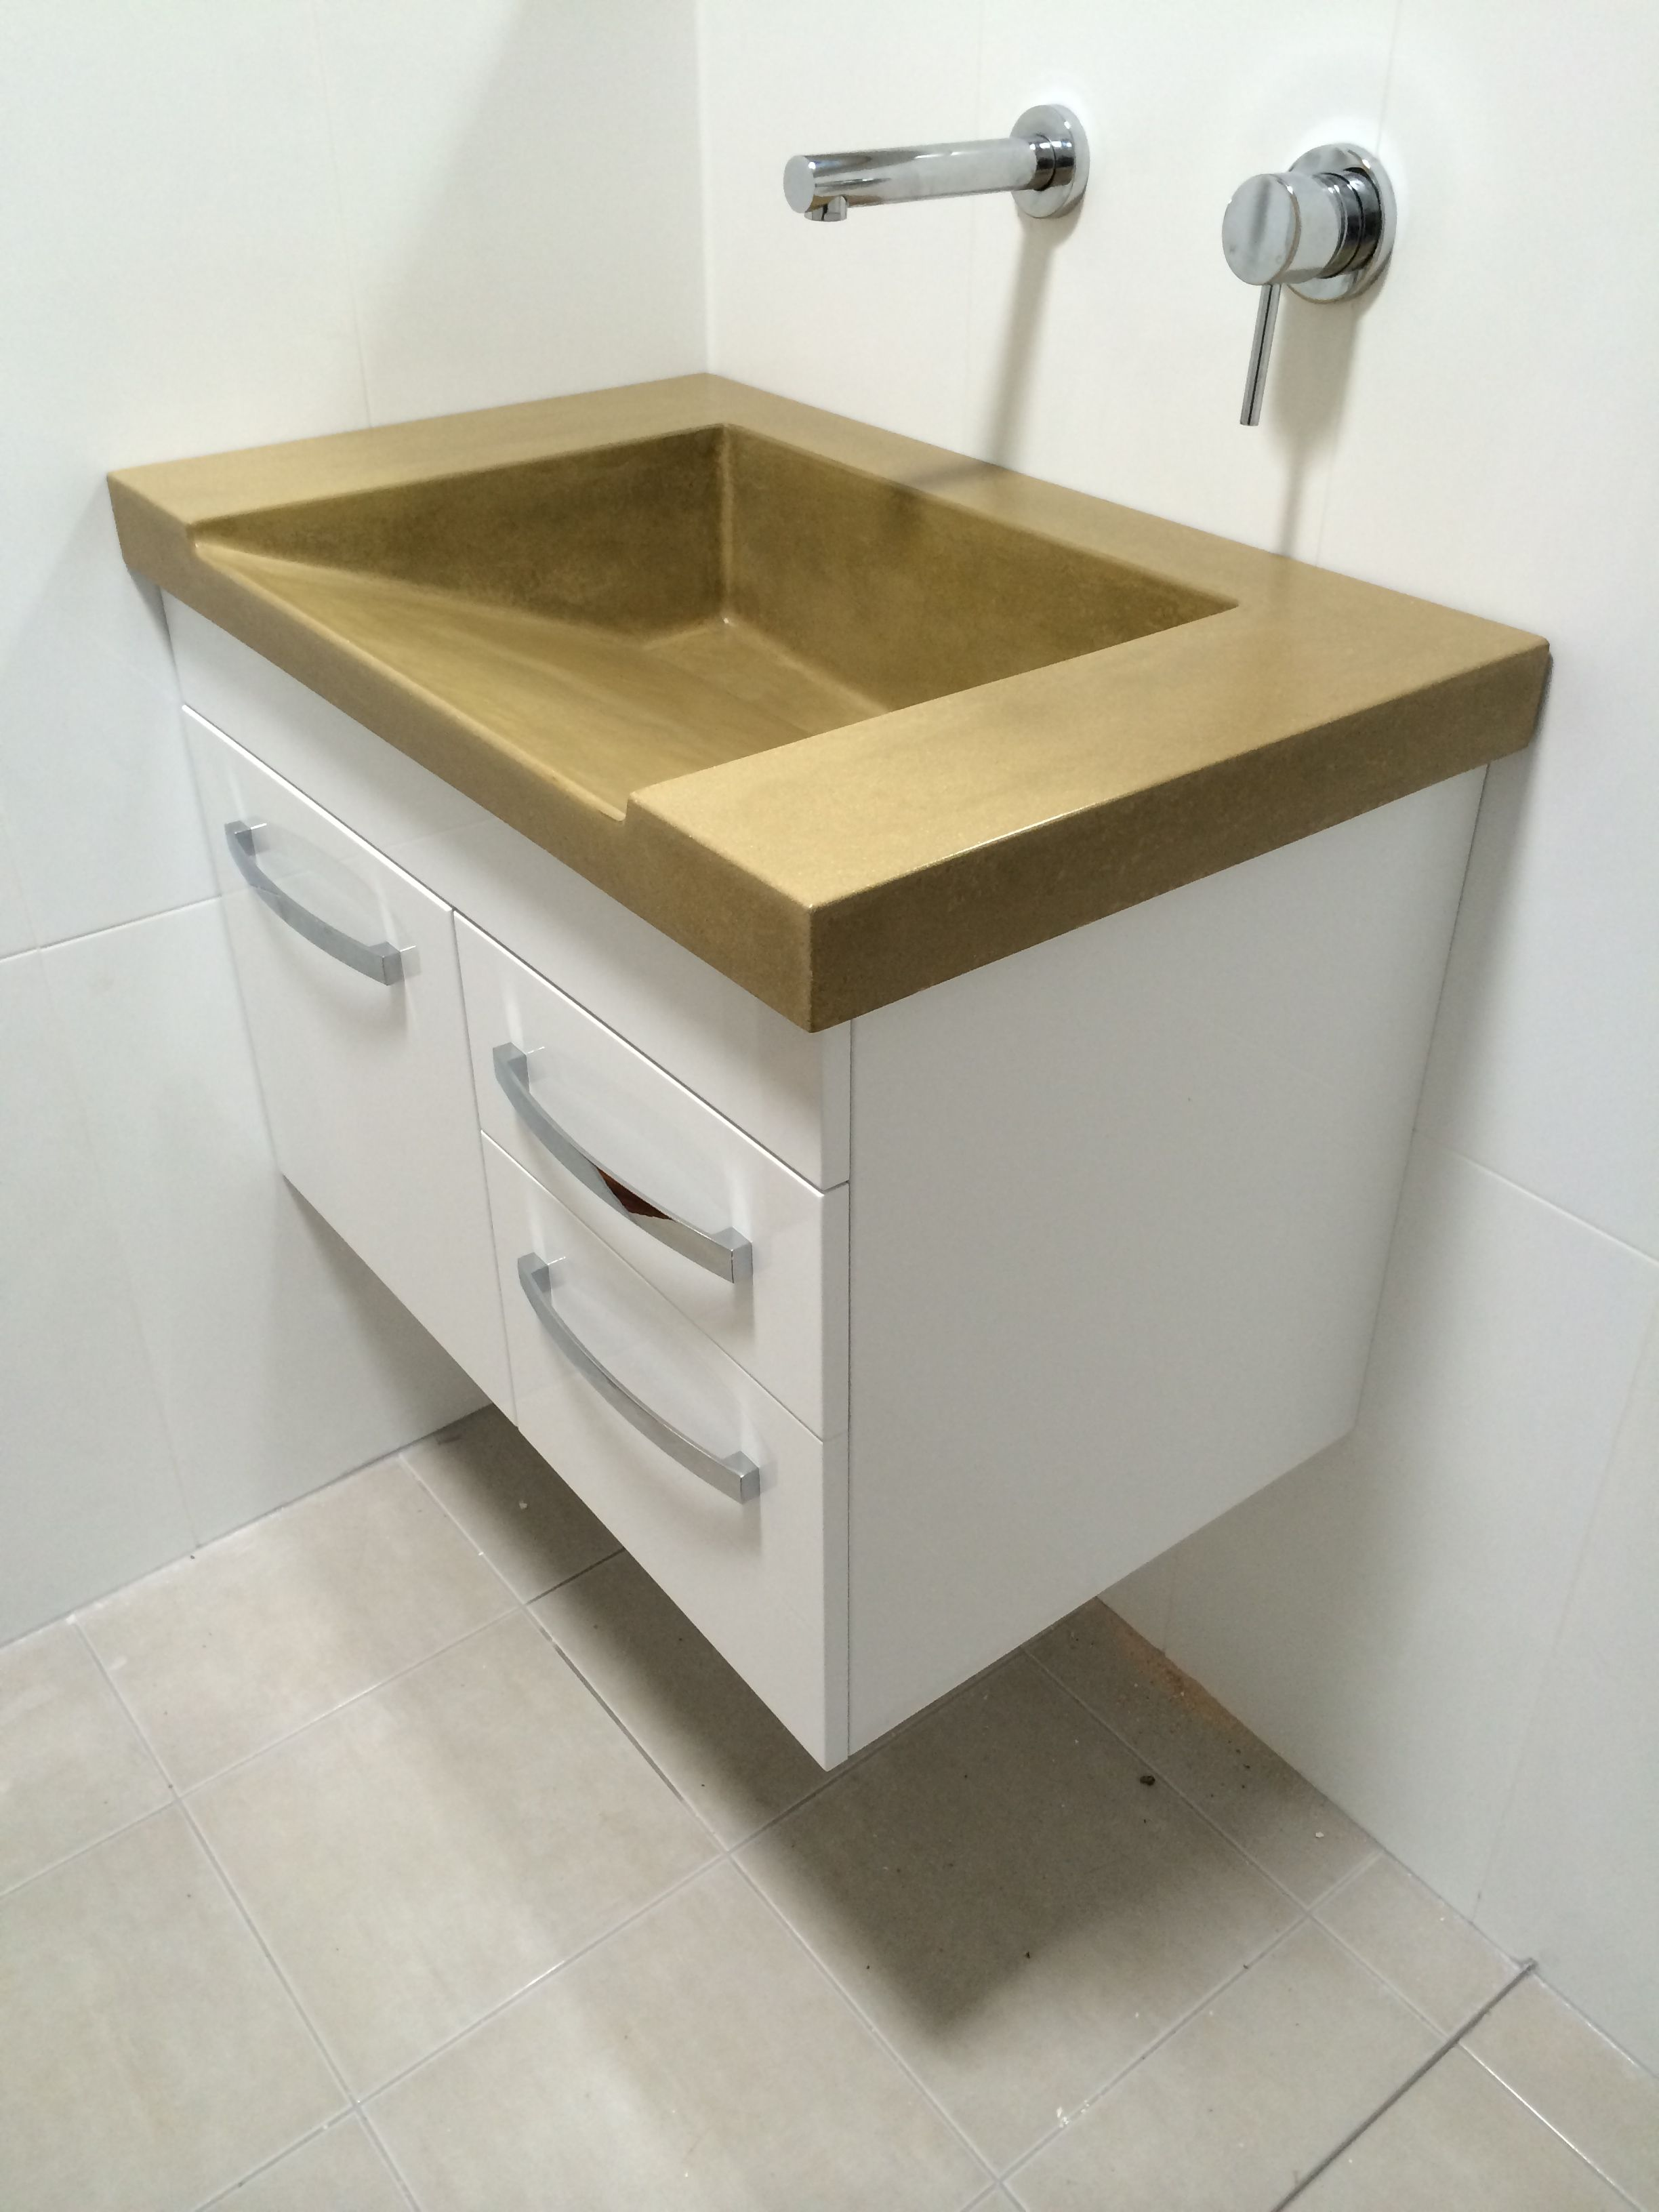 Custom polished concrete vanity top with ramp sink a big statement for an all